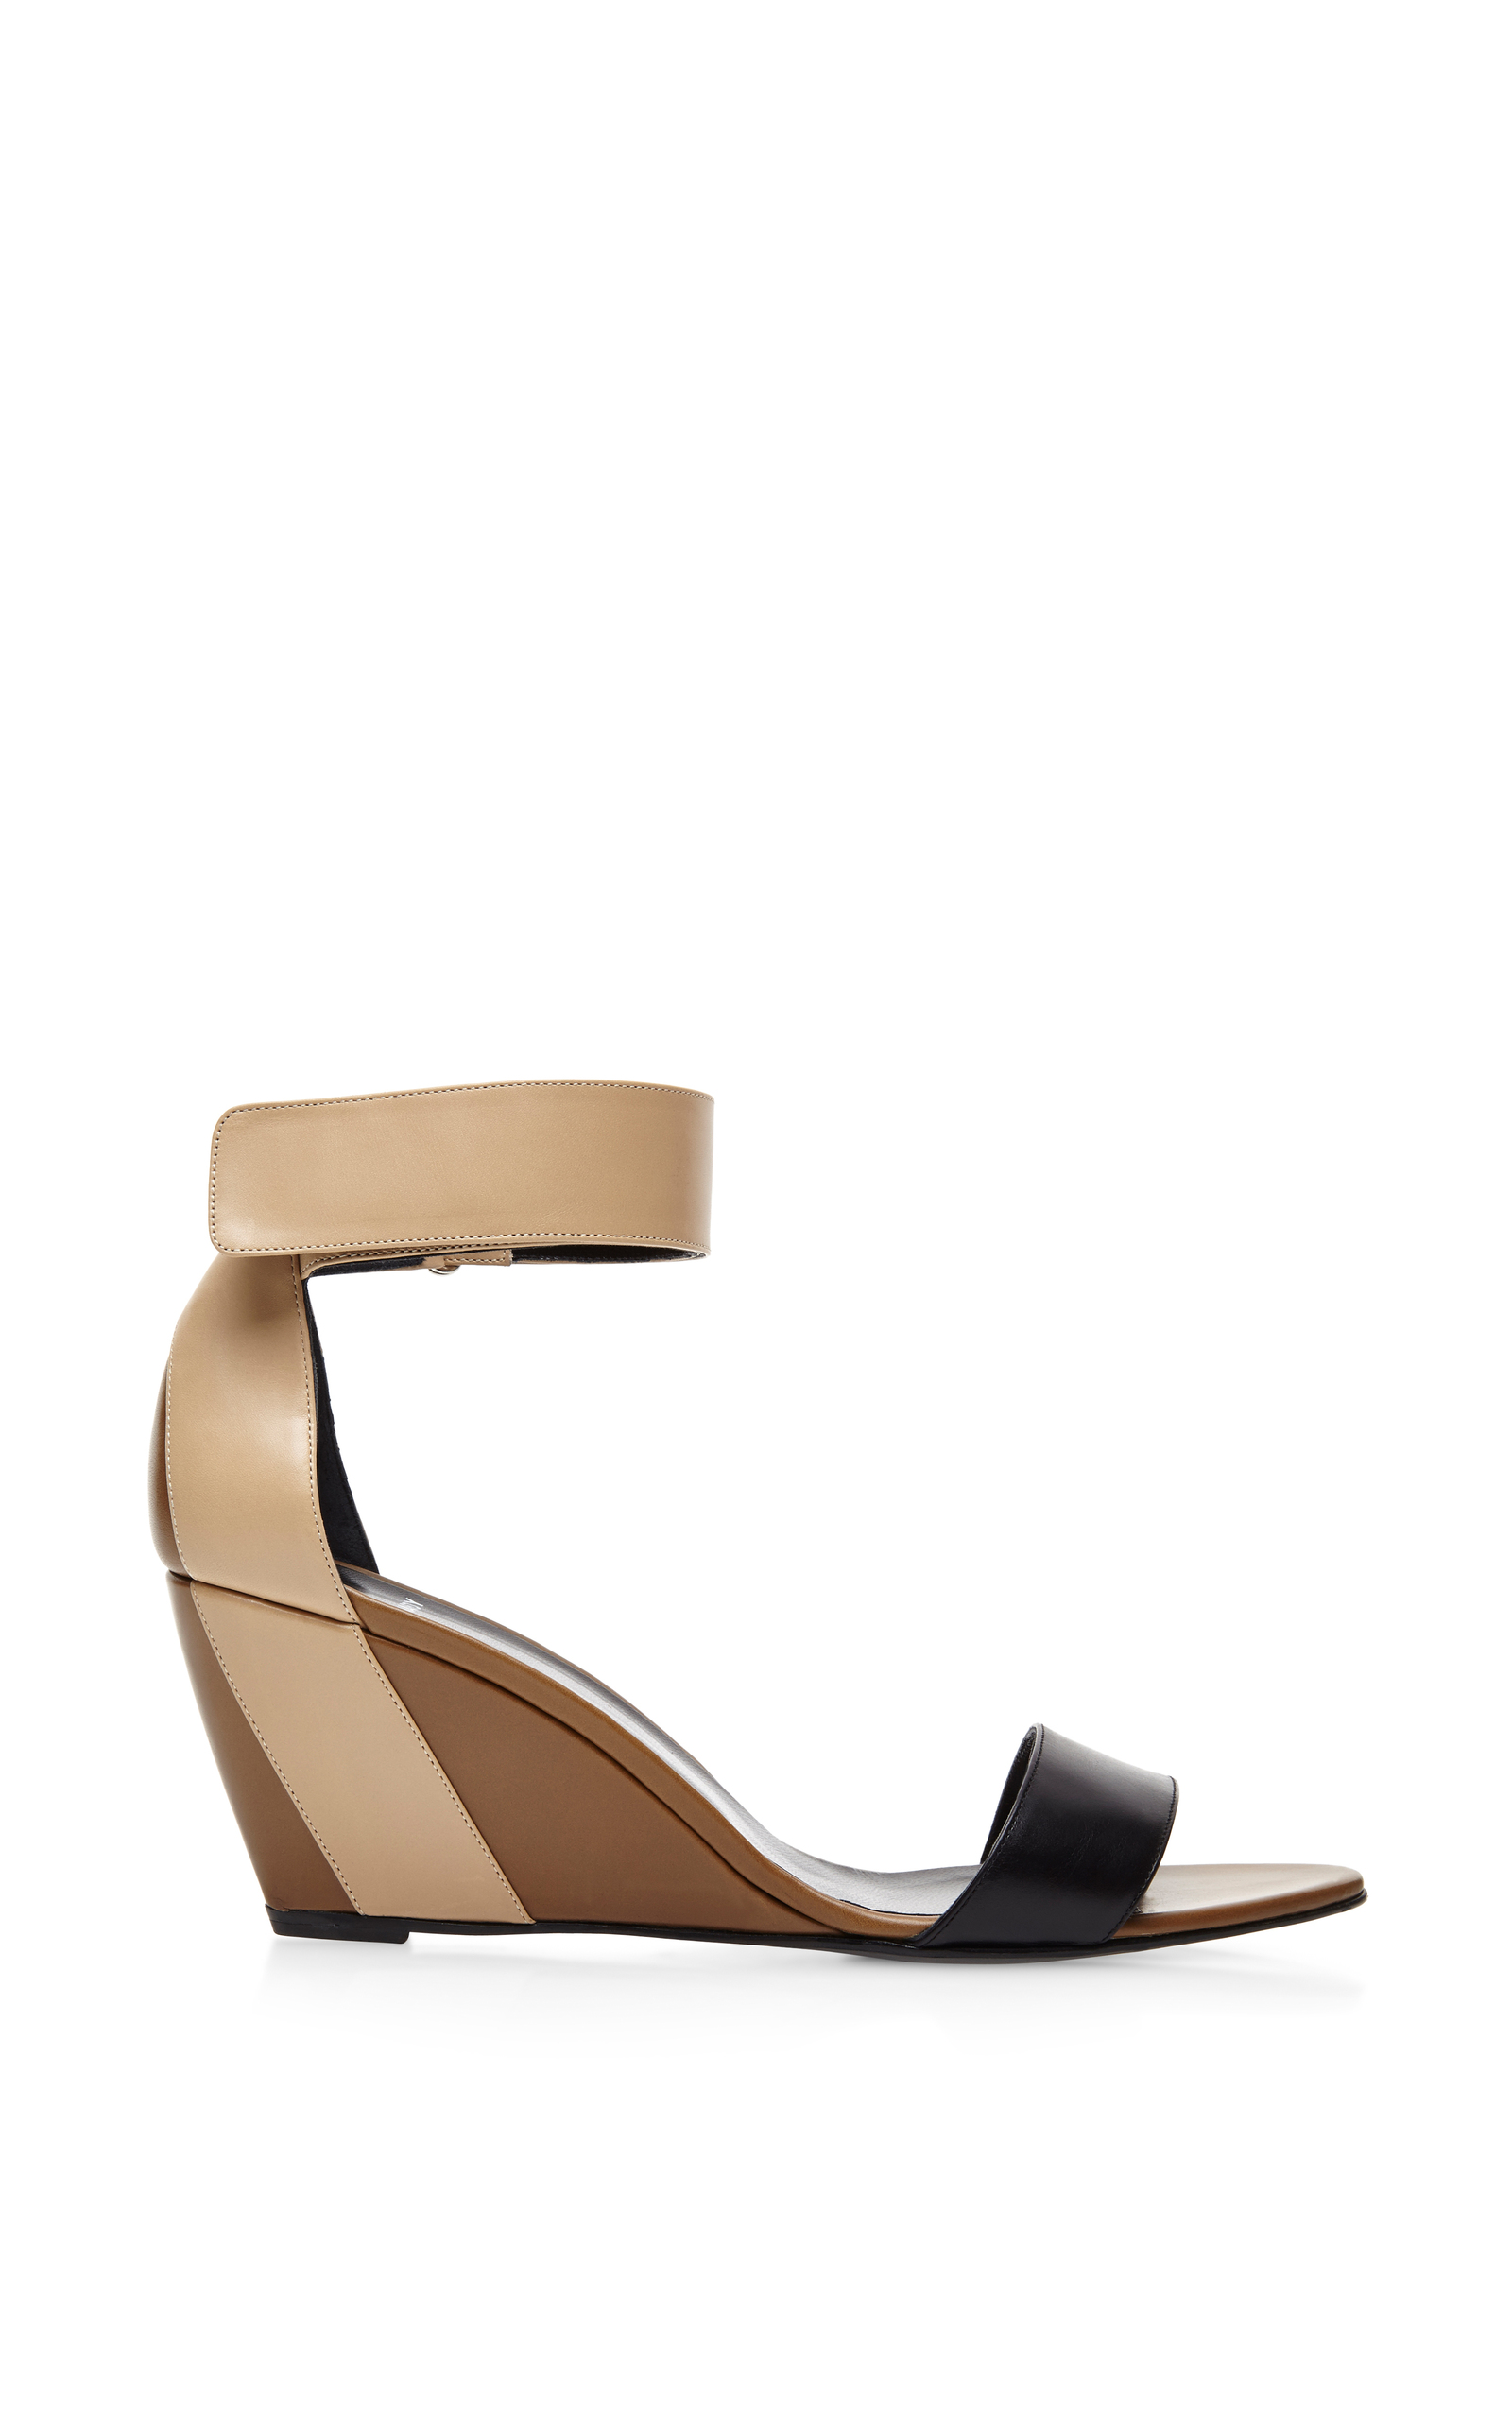 eb79dada09af Pierre HardyColor-Block Leather Wedge Sandals. CLOSE. Loading. Loading.  Loading